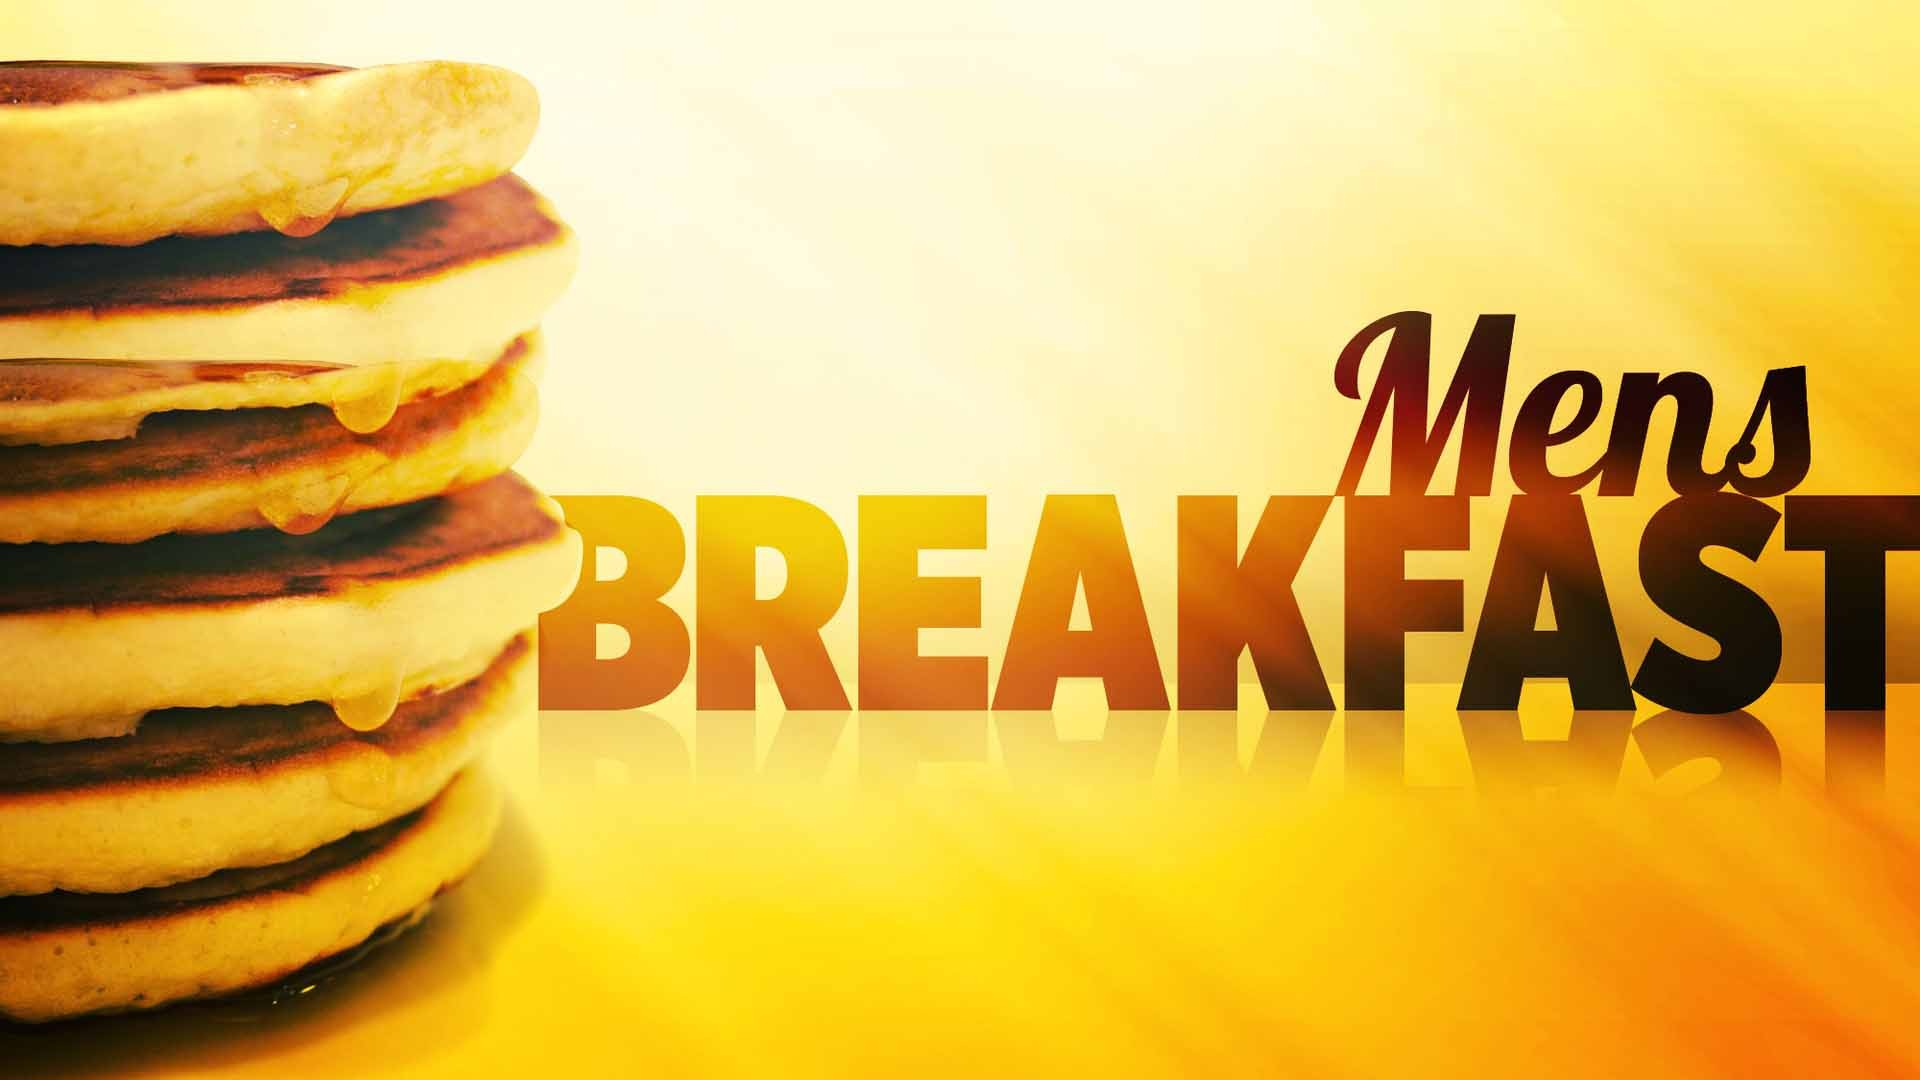 Men's Breakfast image